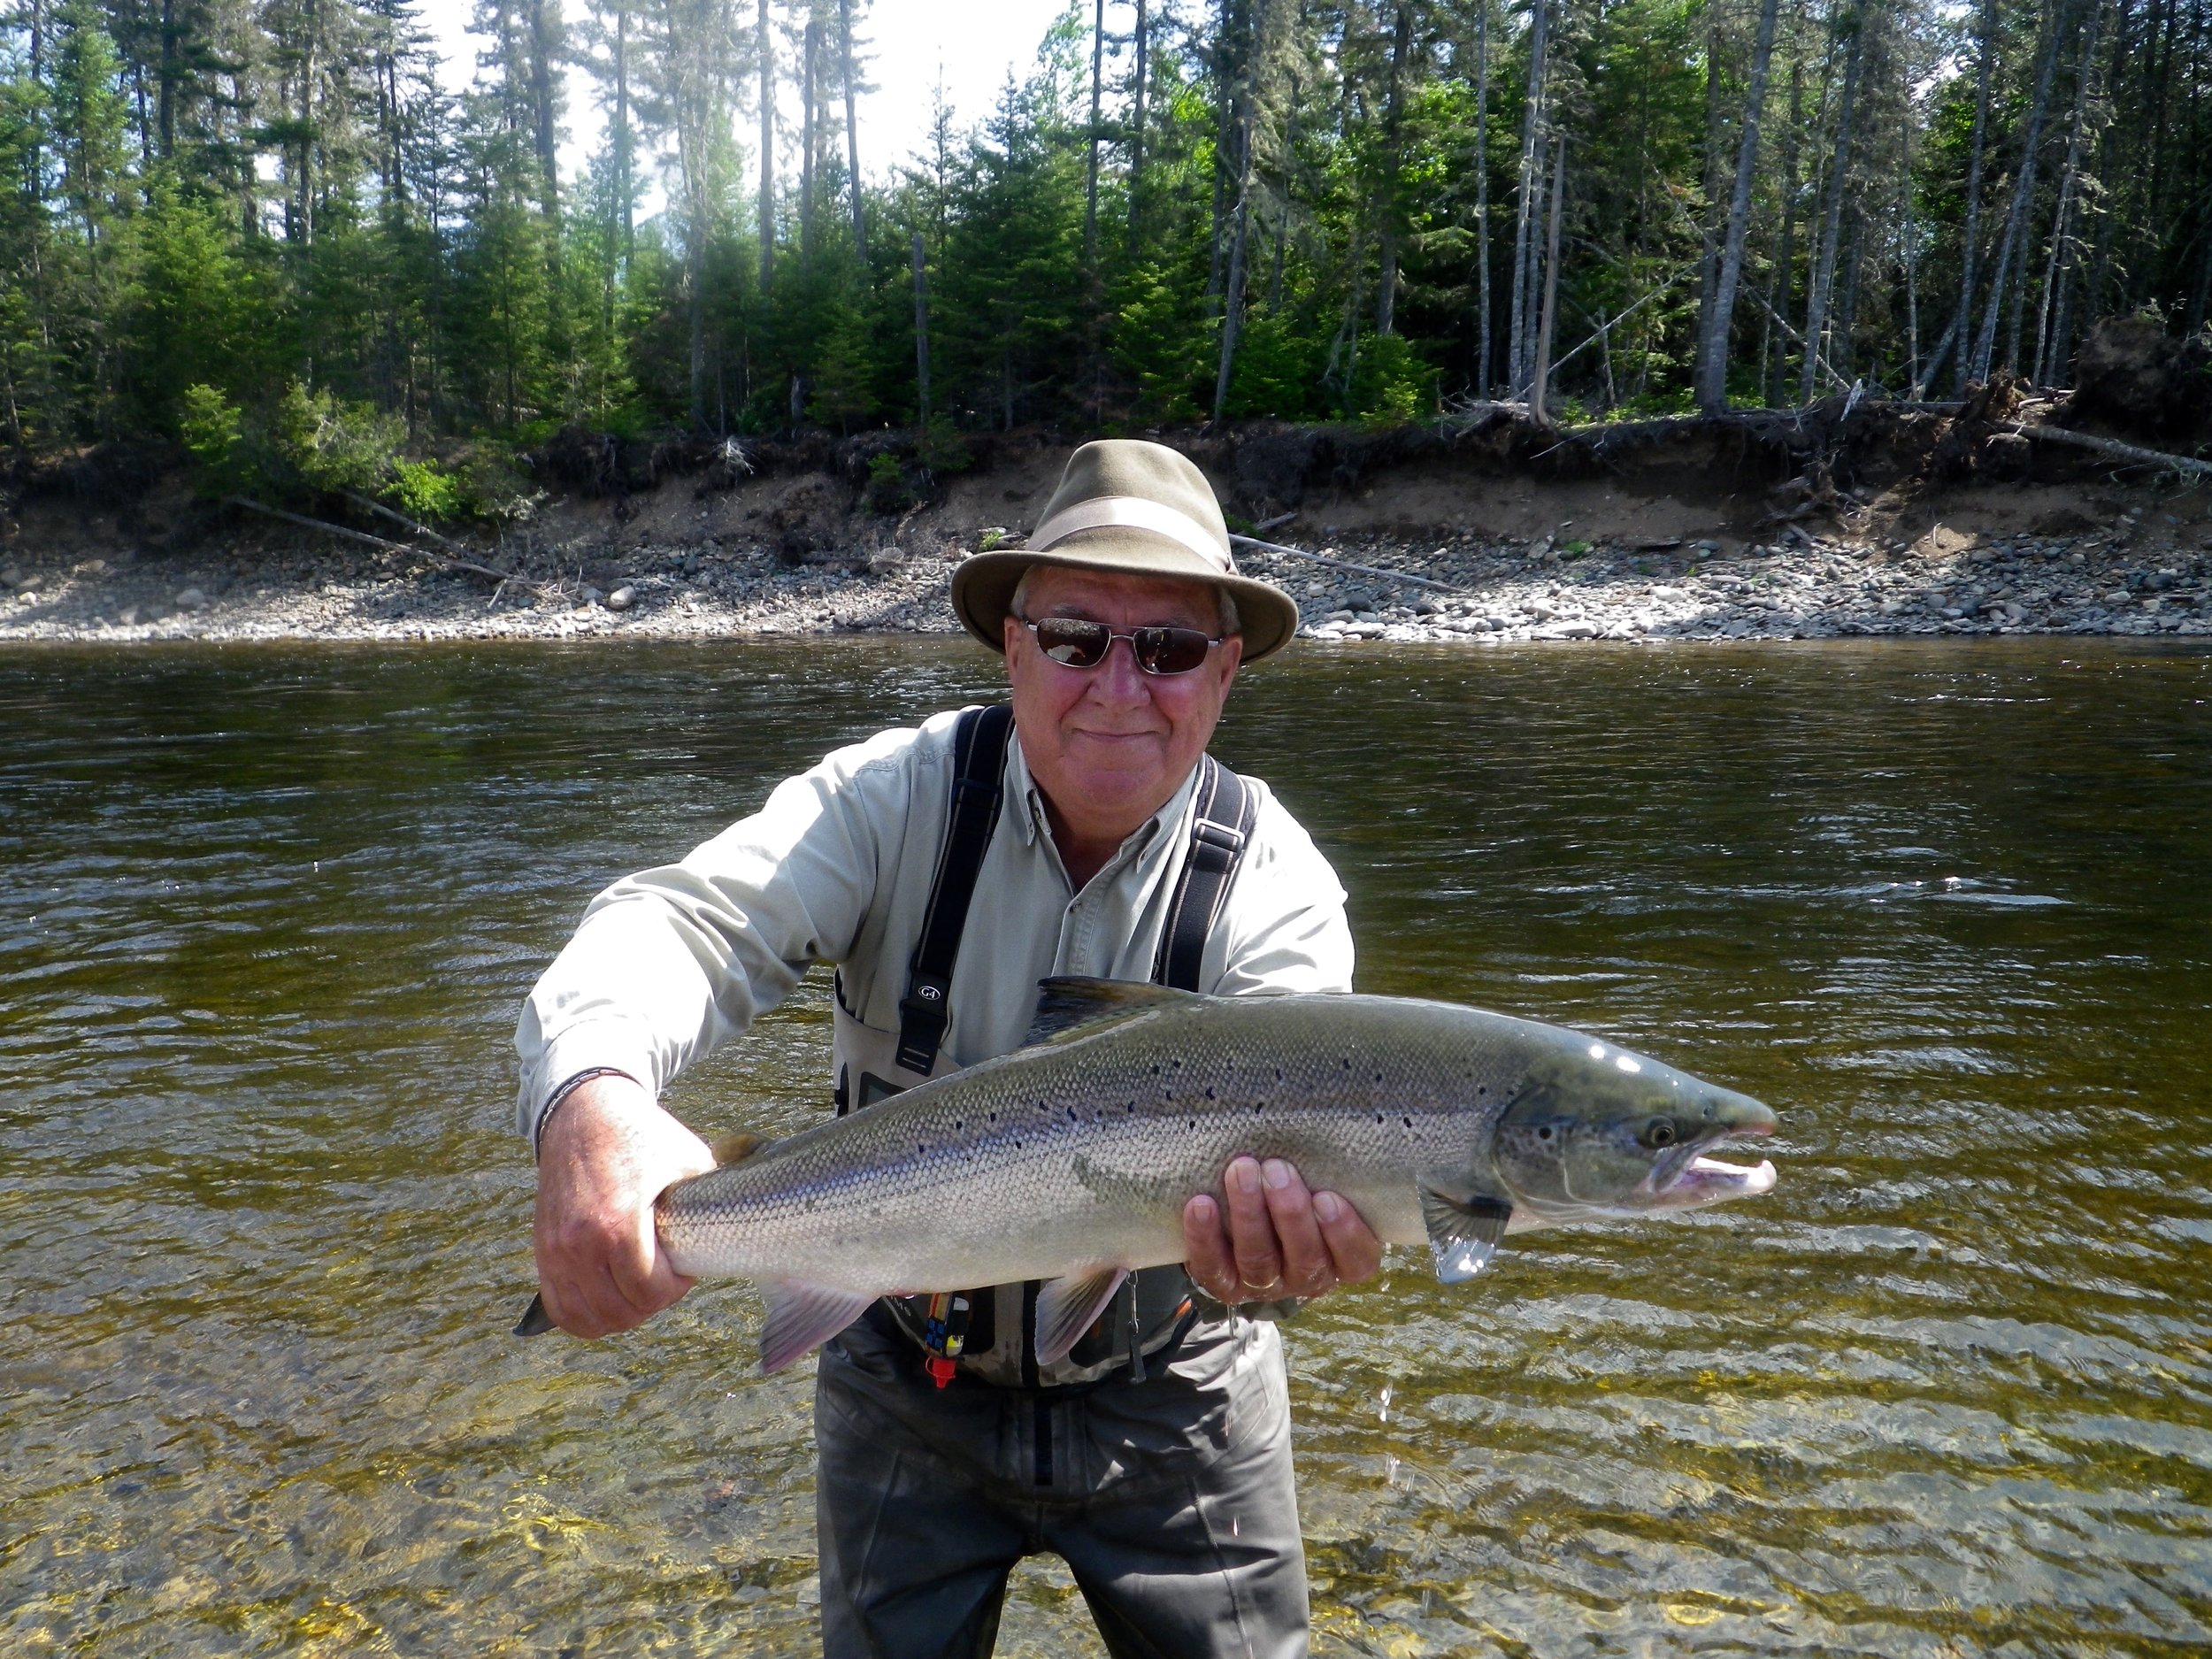 Fred Benere has been coming to Camp Bonaventure for 25 years, a great angler and good friend, congratulations Fred!